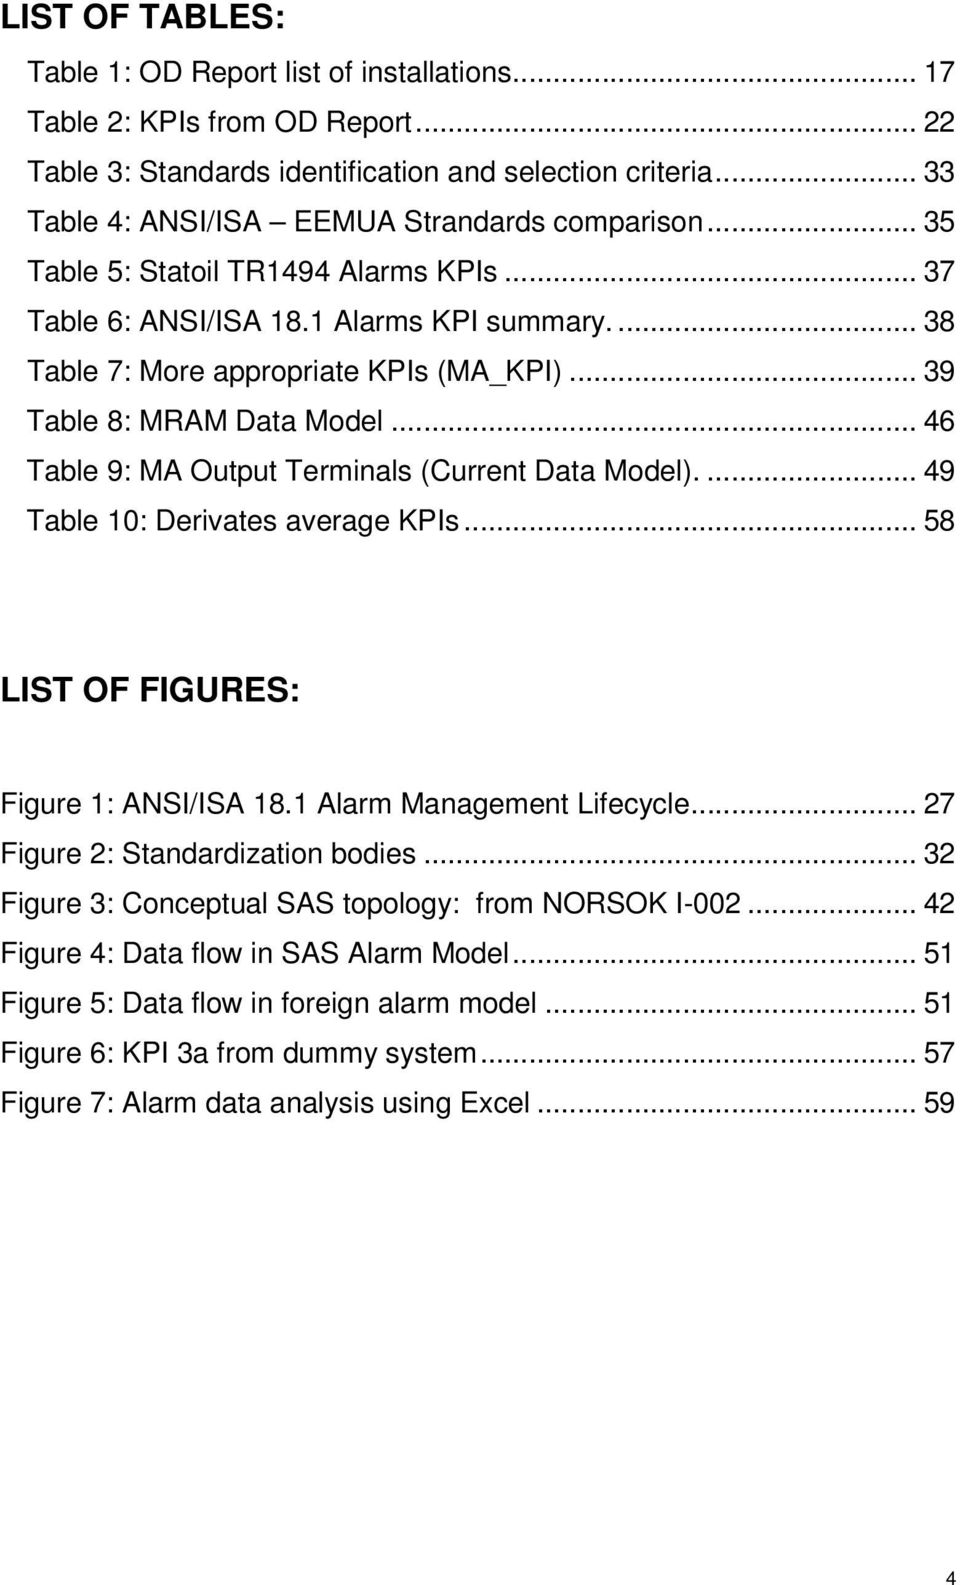 .. 39 Table 8: MRAM Data Model... 46 Table 9: MA Output Terminals (Current Data Model).... 49 Table 10: Derivates average KPIs... 58 LIST OF FIGURES: Figure 1: ANSI/ISA 18.